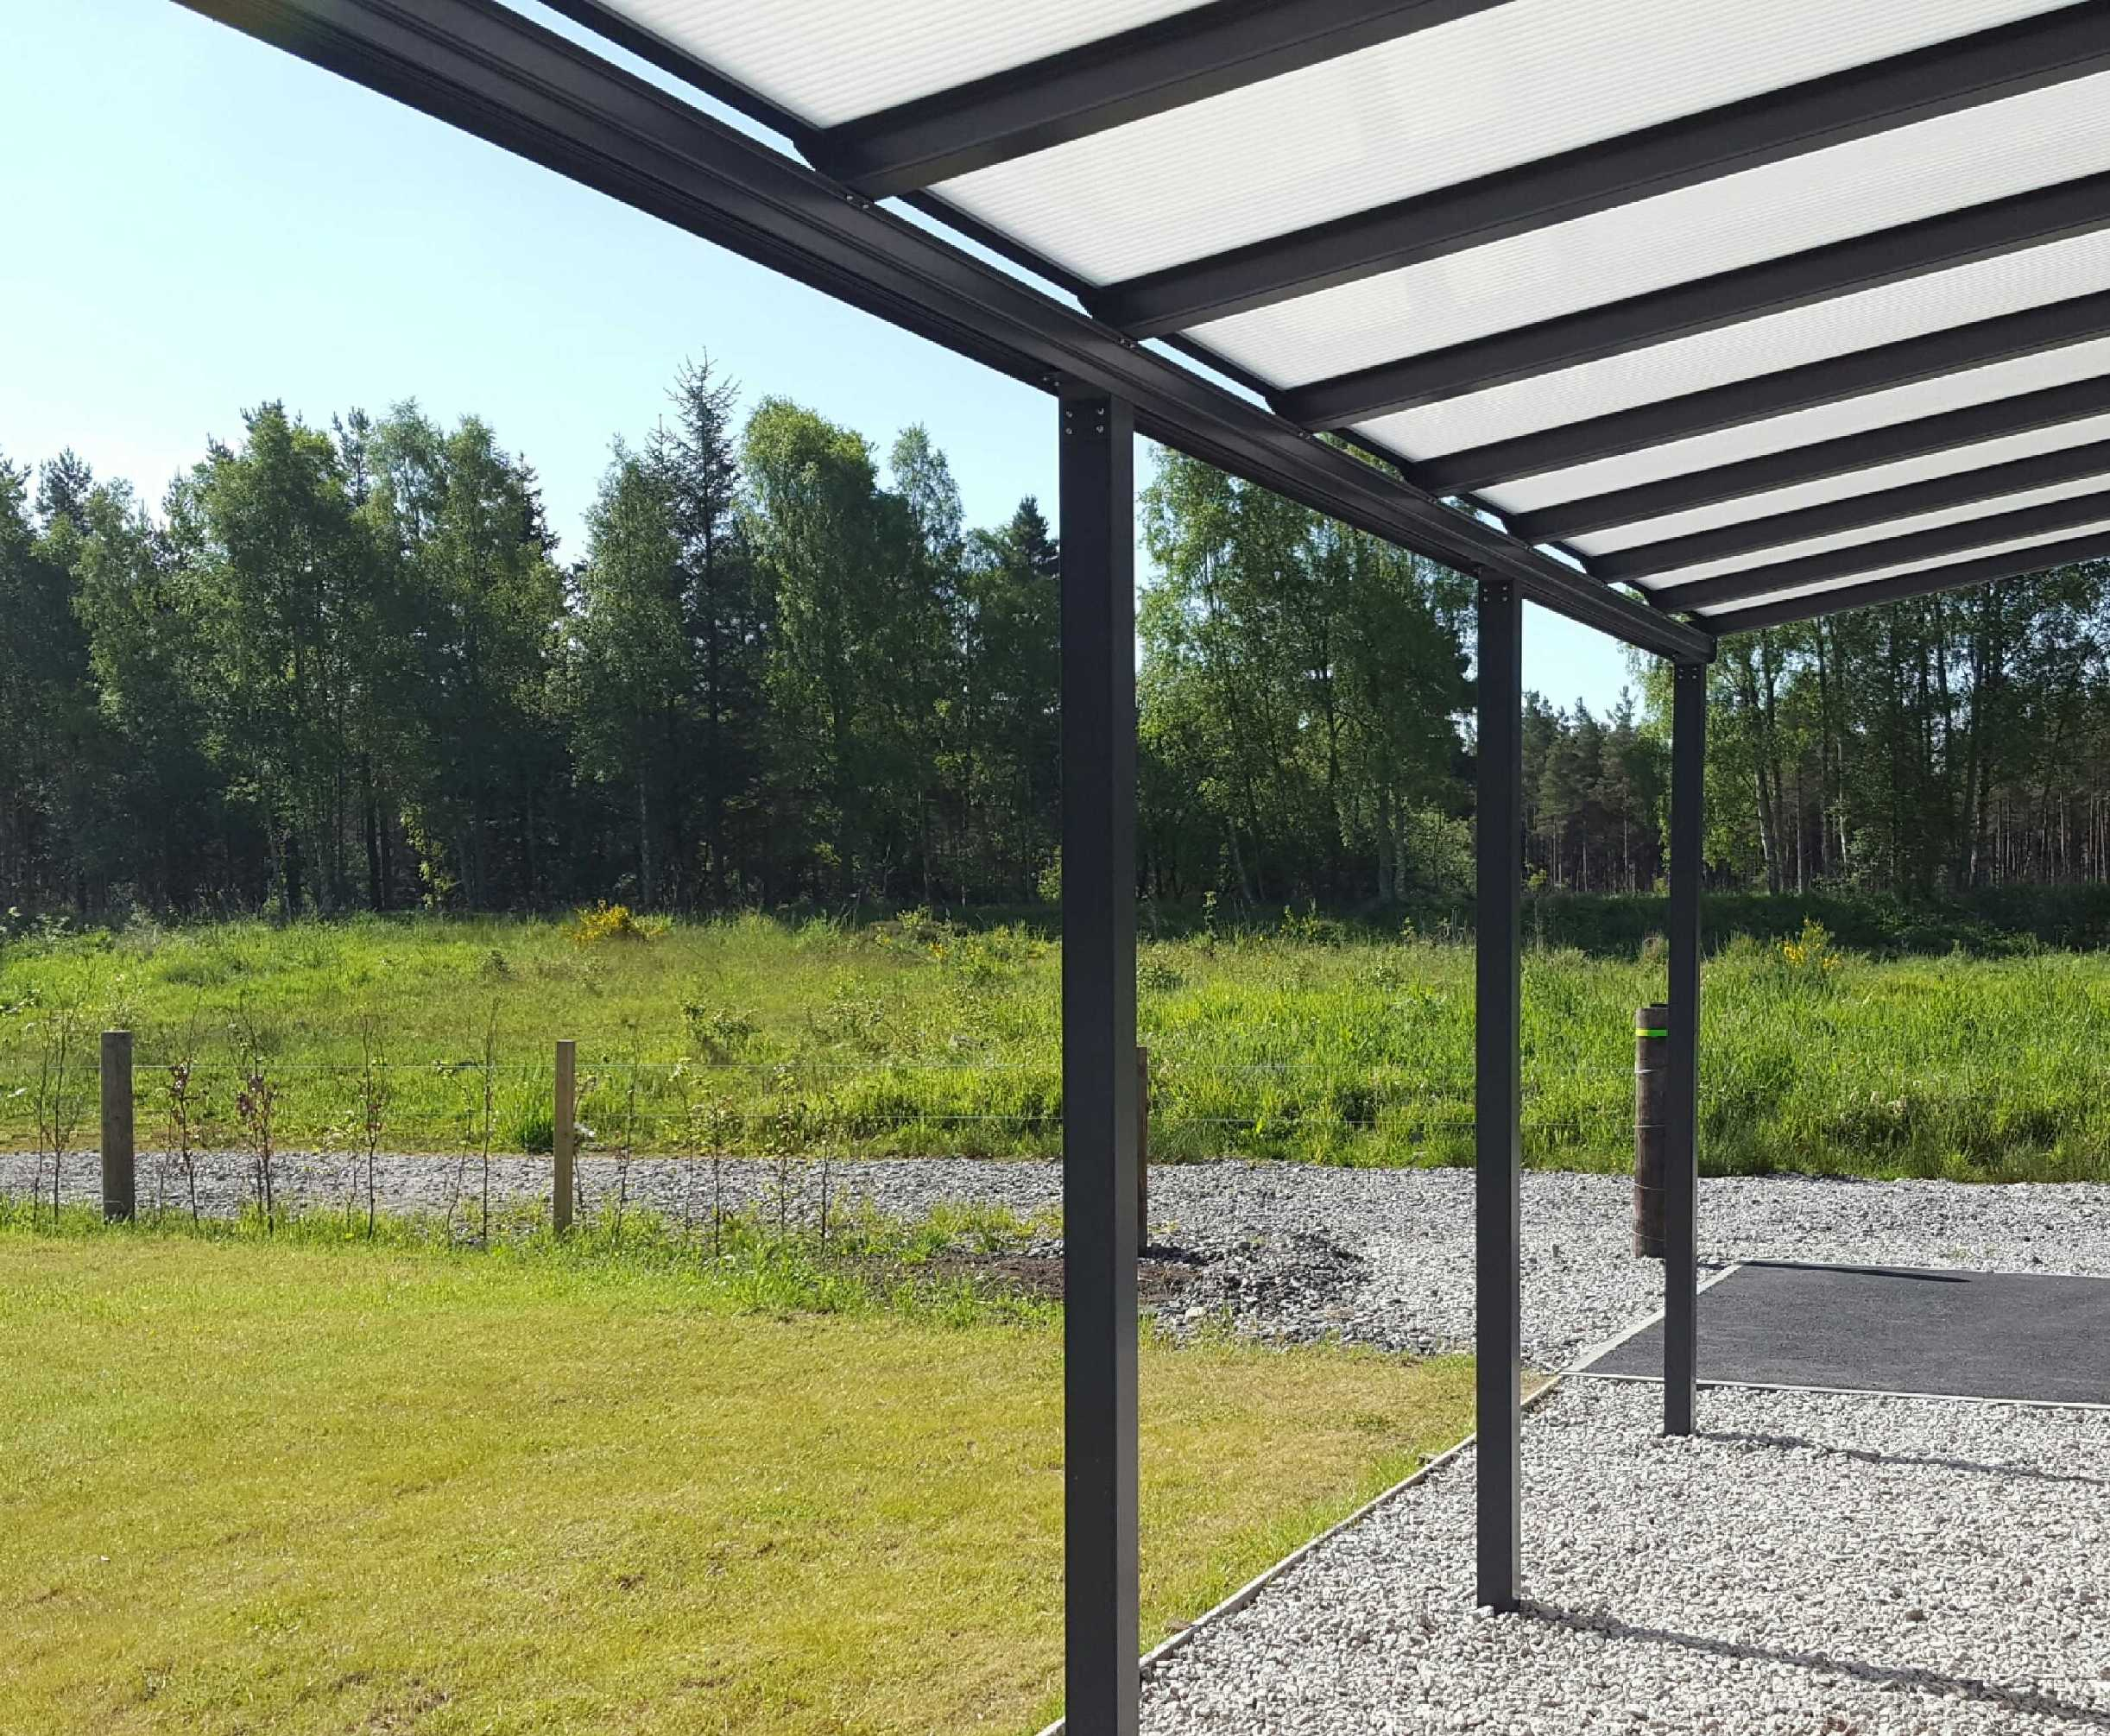 Omega Smart Lean-To Canopy, Anthracite Grey, UNGLAZED for 6mm Glazing - 9.8m (W) x 2.0m (P), (5) Supporting Posts